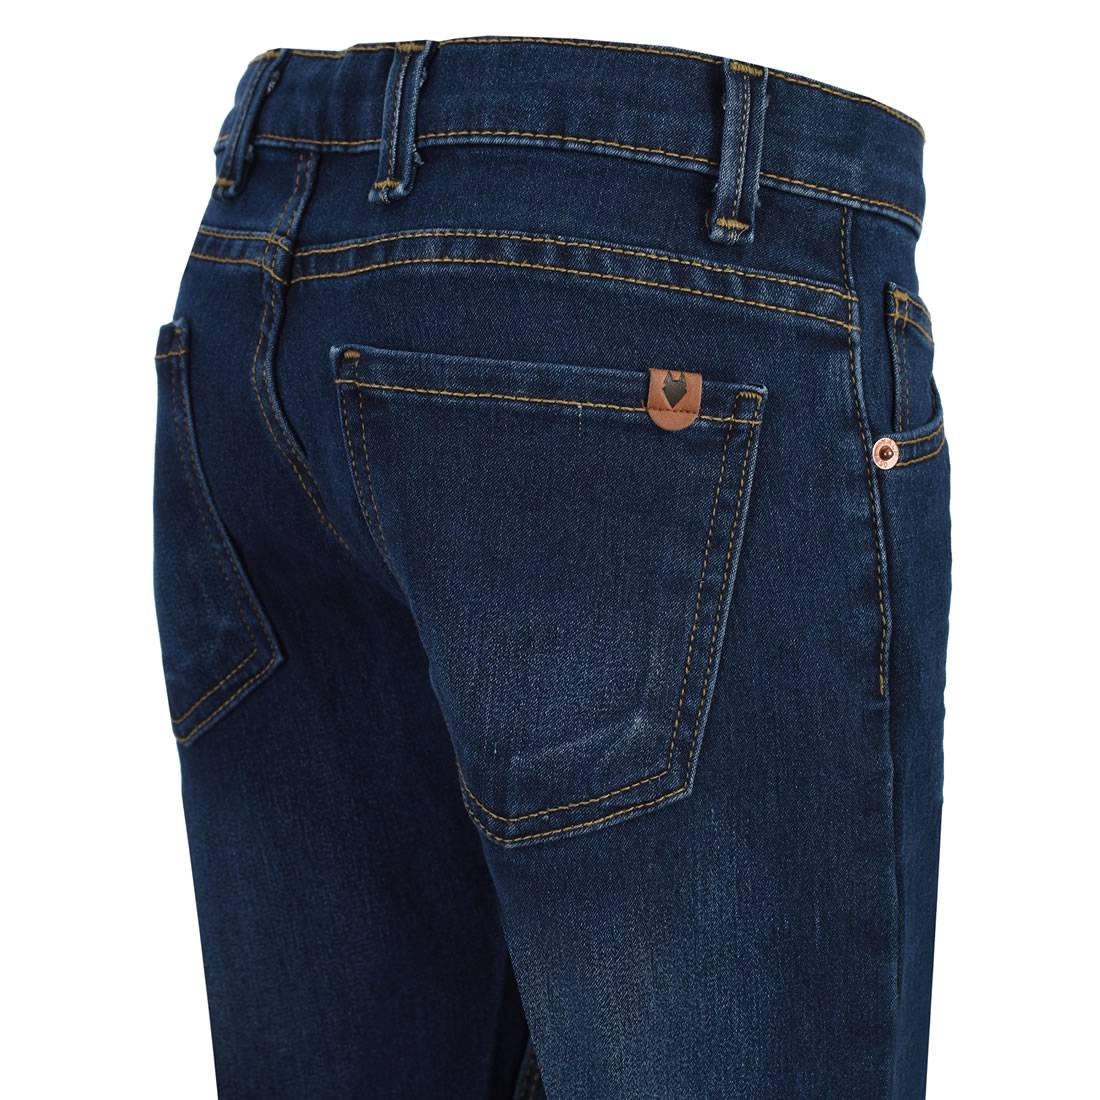 021403206918-04-Jeans-Boys-Boot-Cut-Hand-Sand-Whiskers-Con-Elastano-Cintura-Ajustable-Stone-Wash-yale